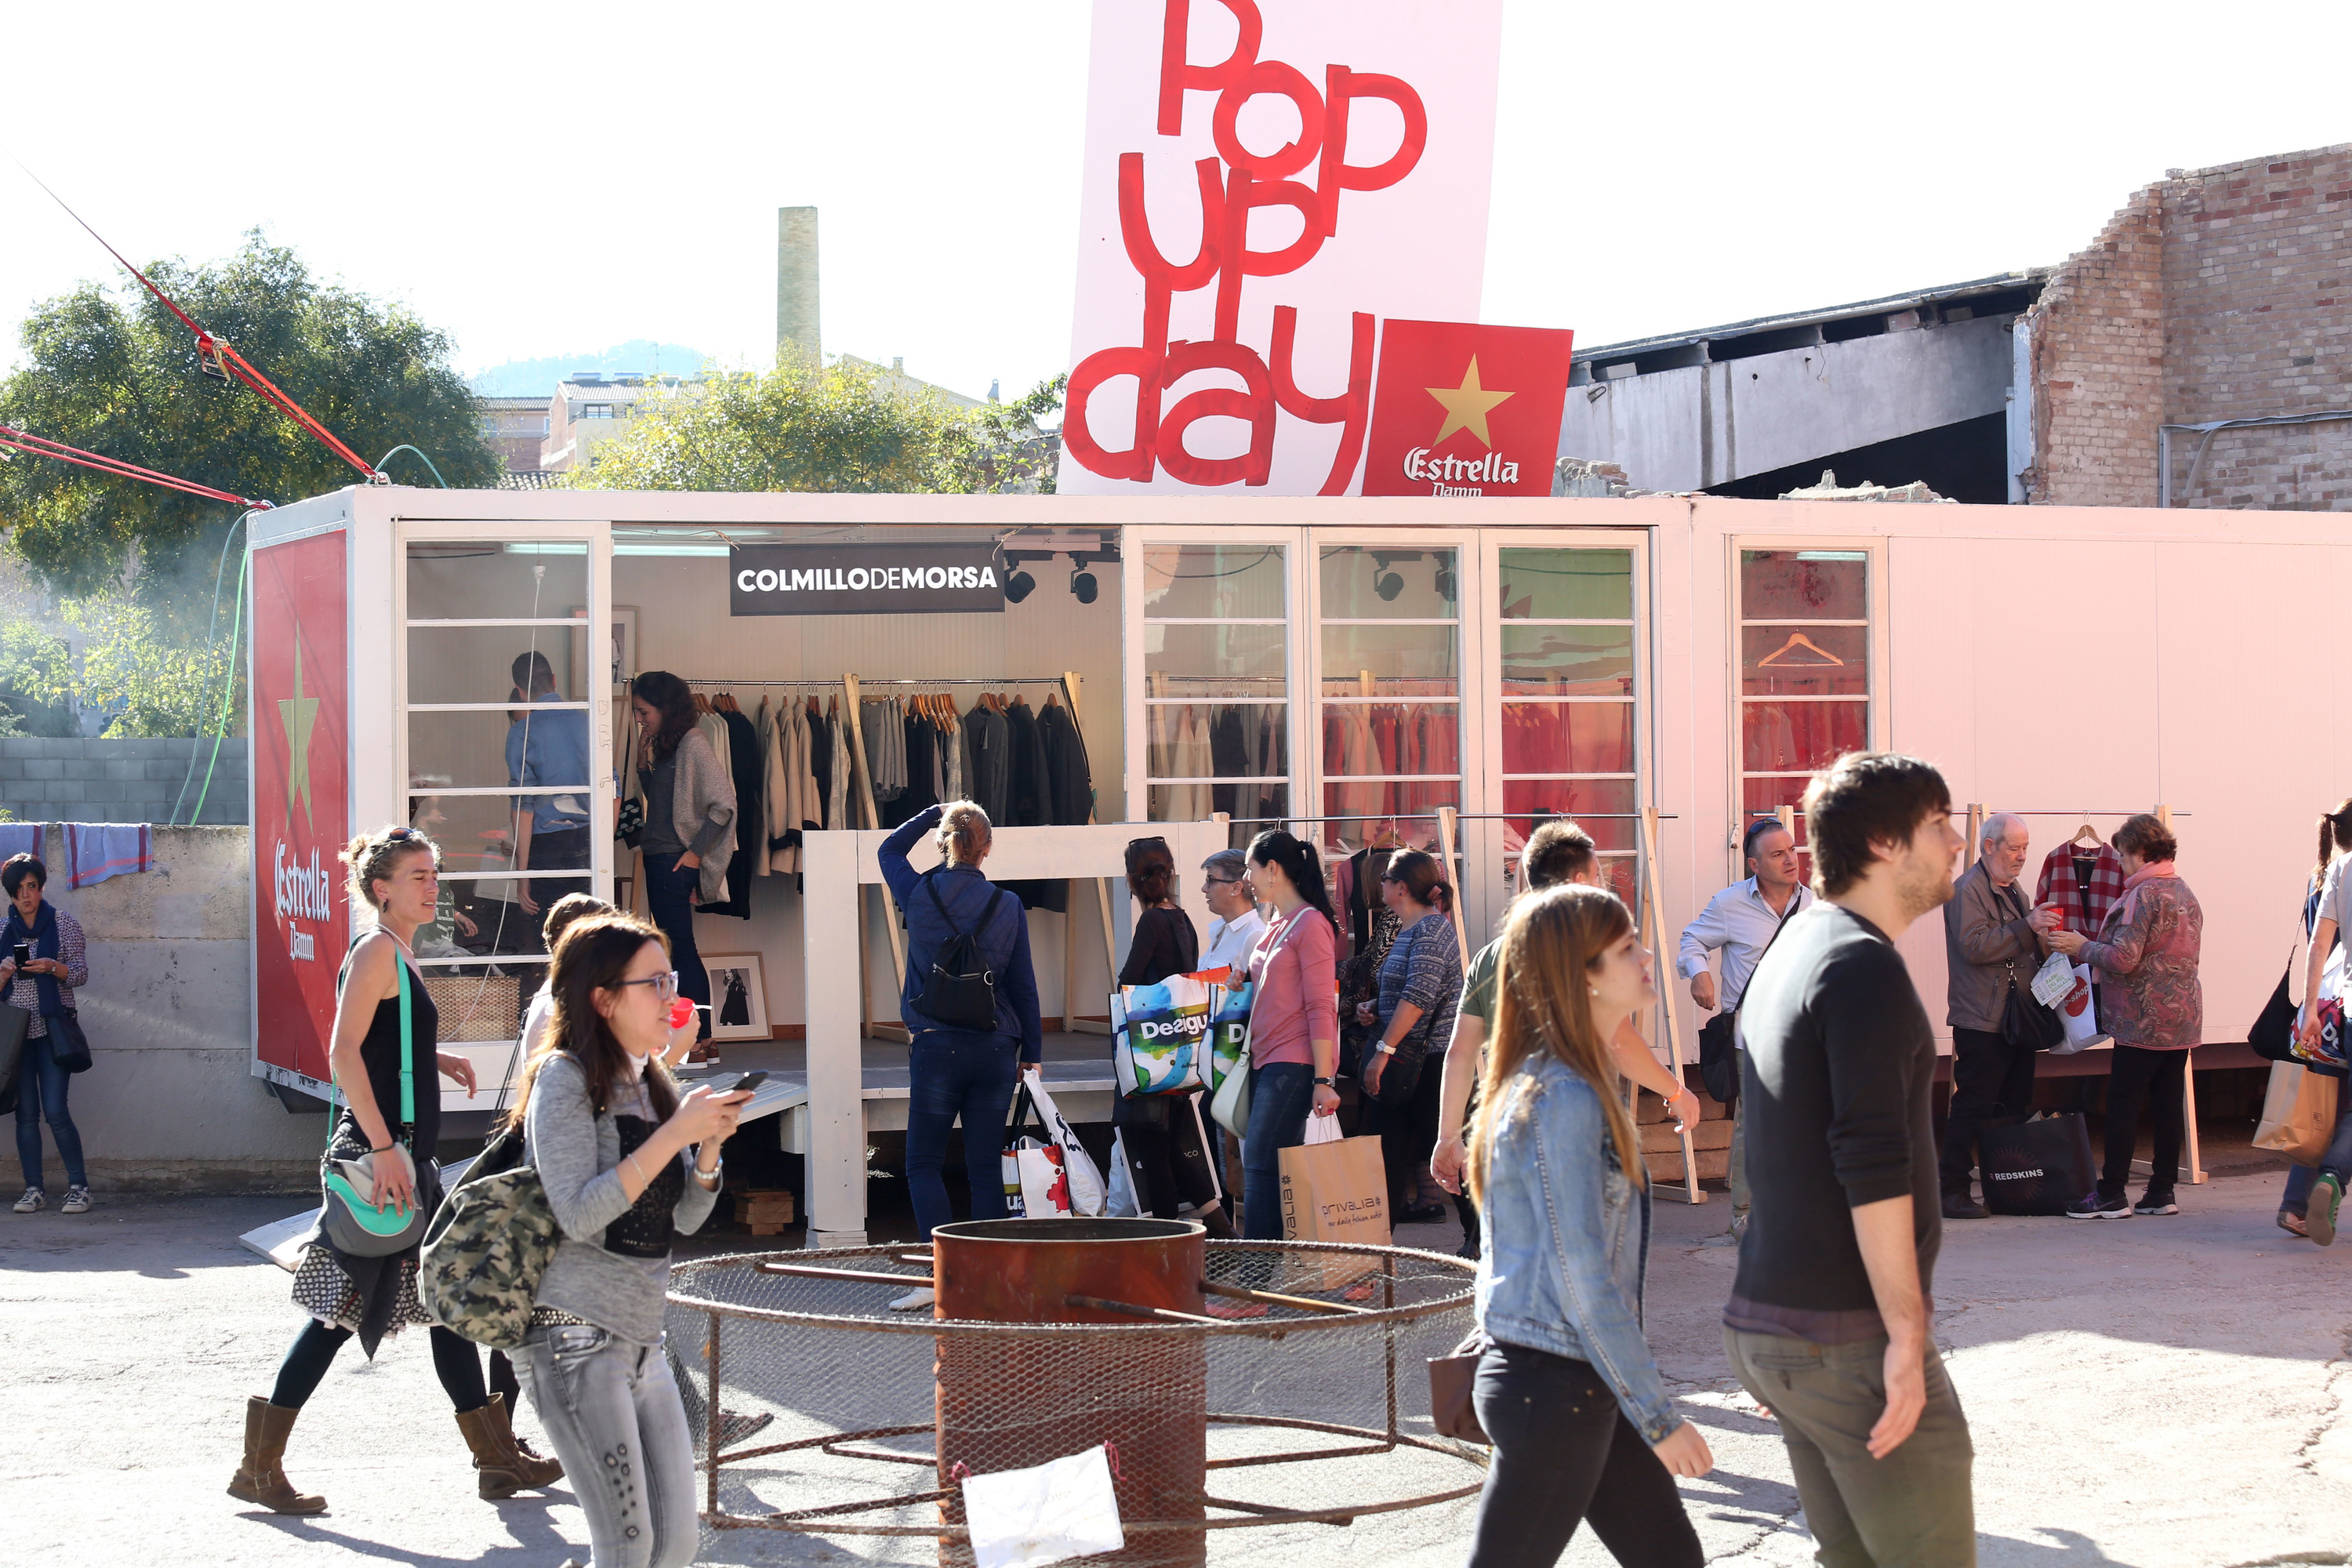 Rec pop up day by Estrella Damm